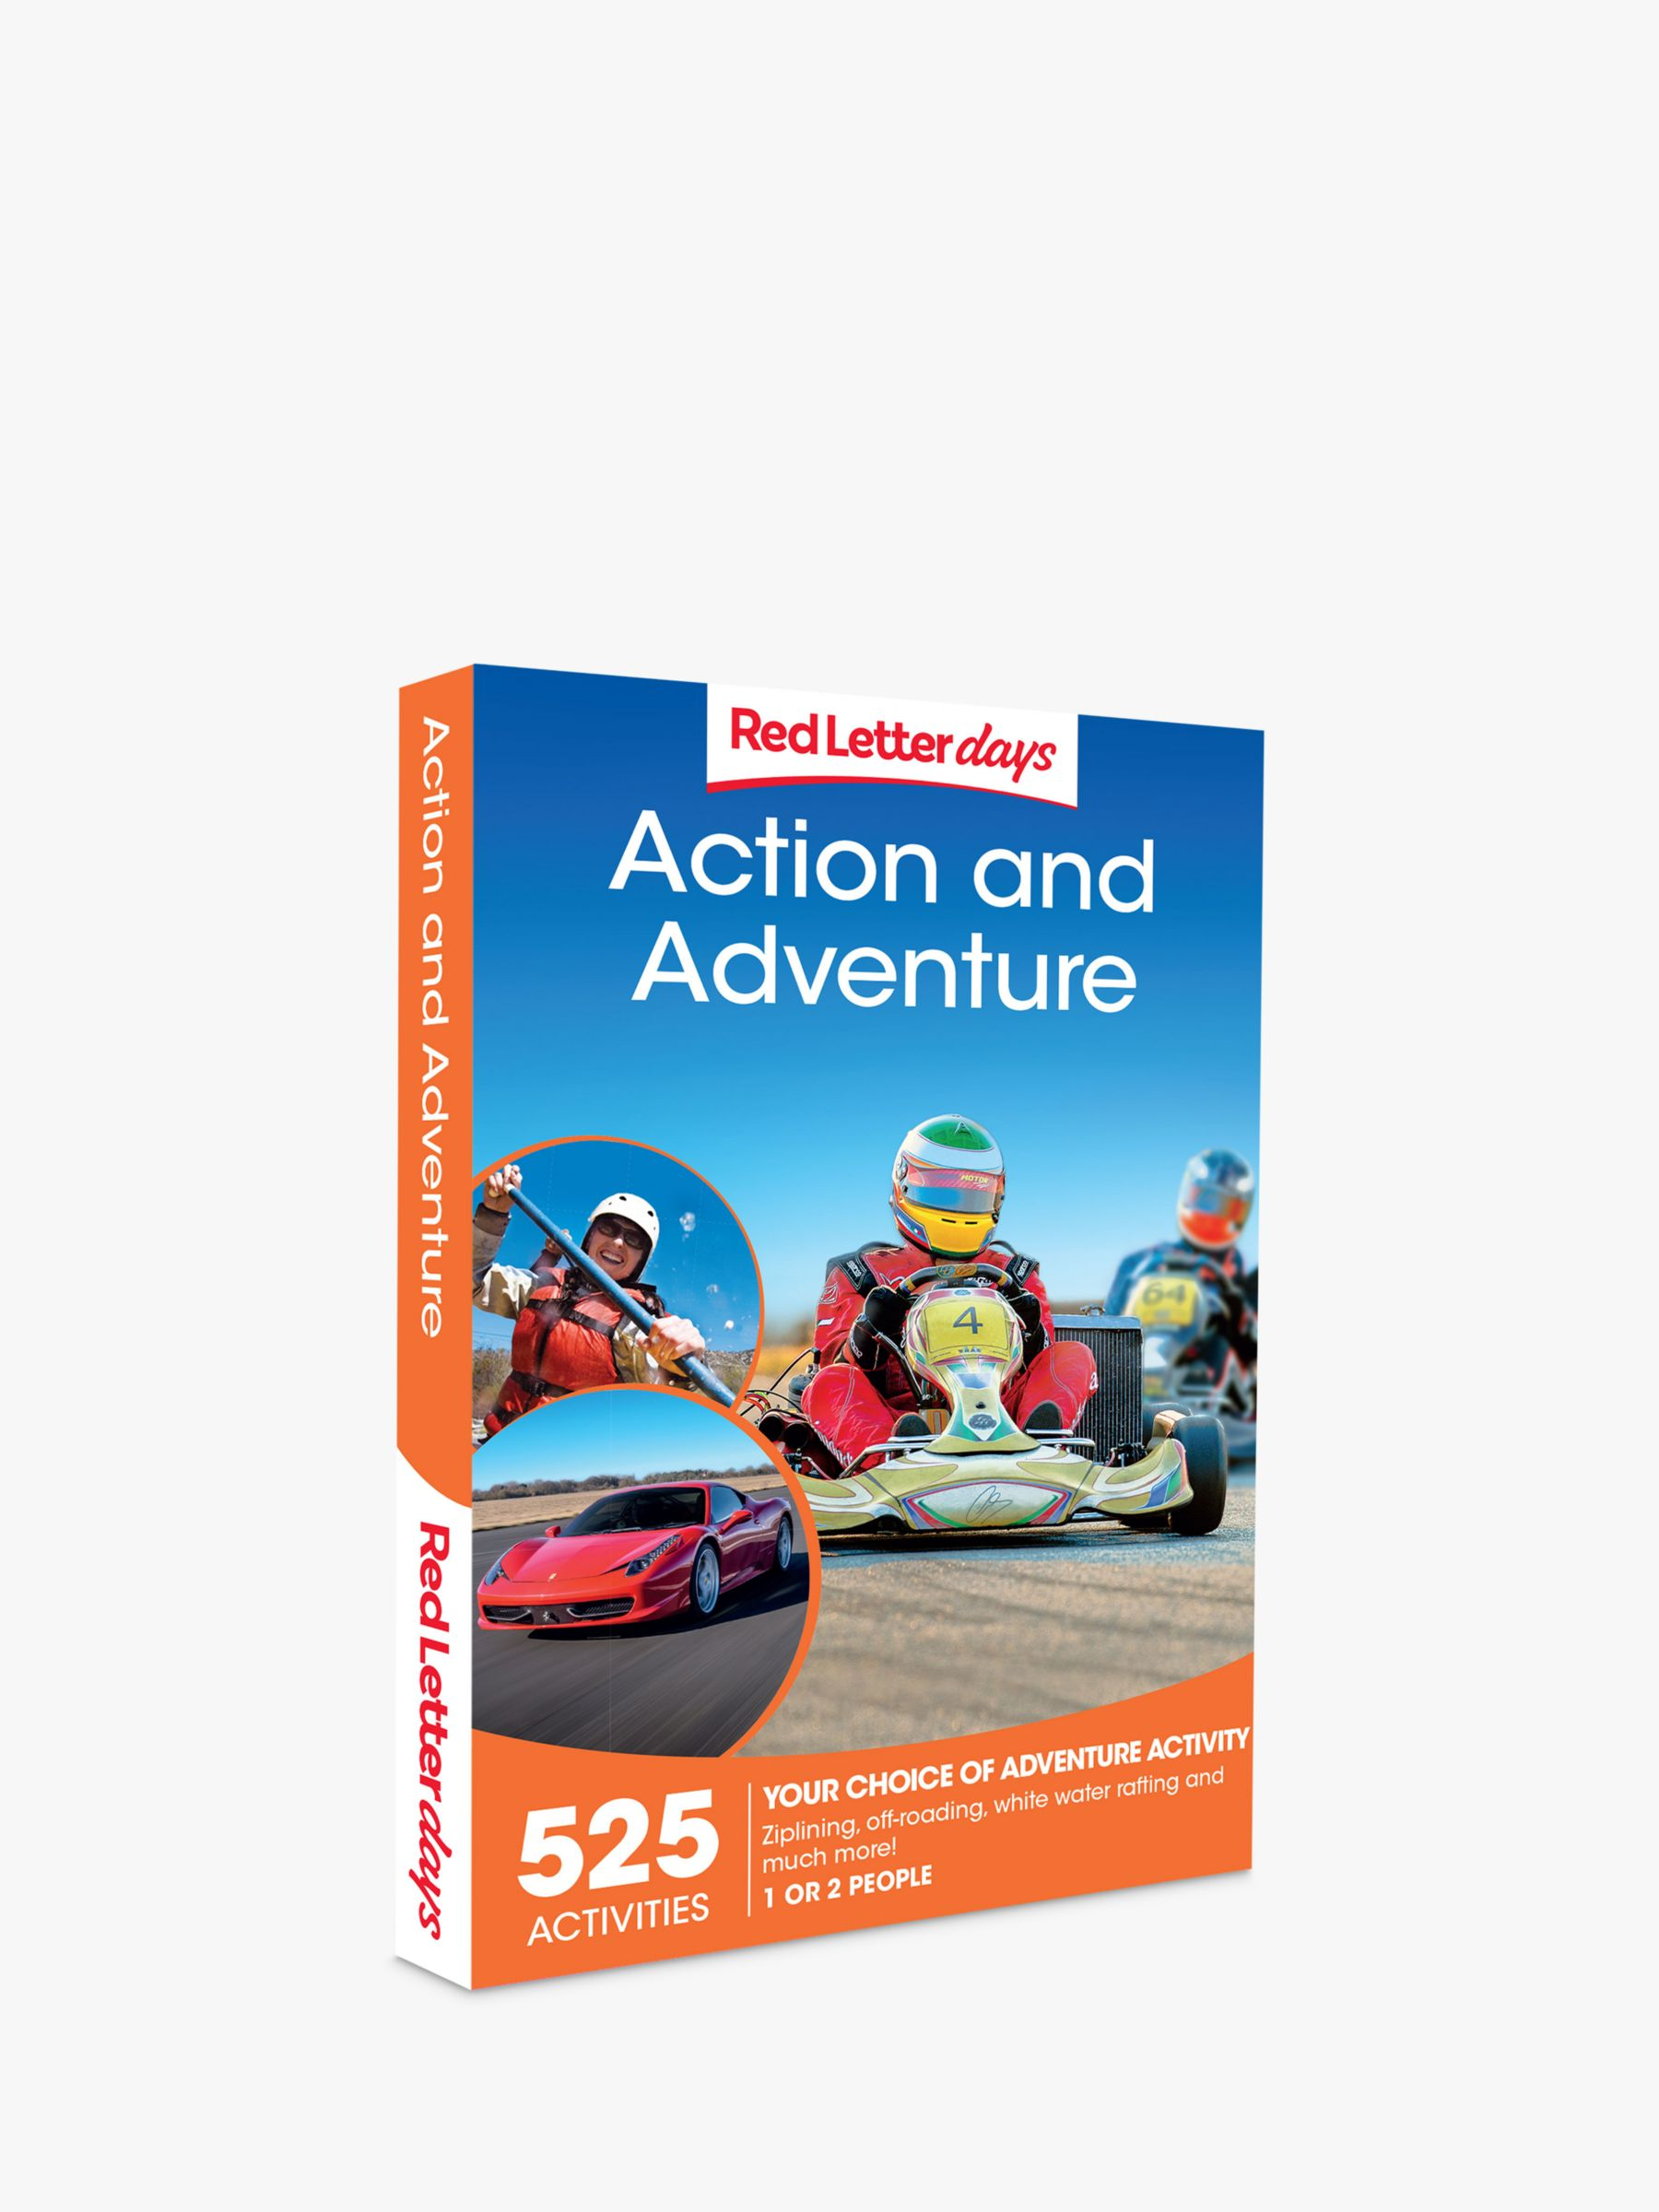 Red Letter Days Red Letter Days Action and Adventure Gift Experience